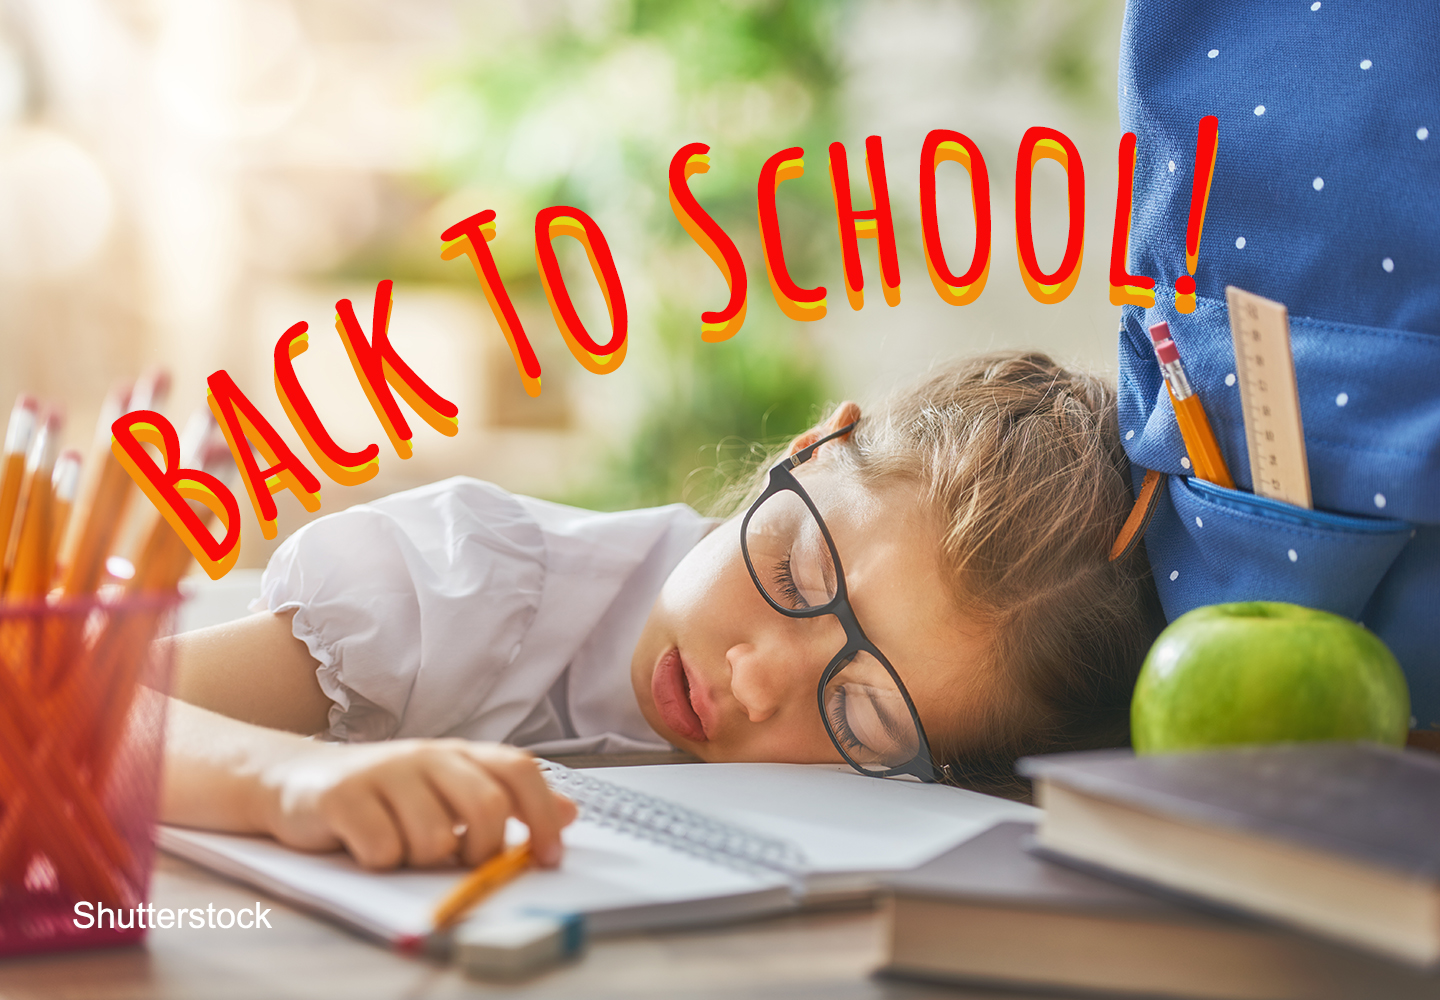 back to school featured image